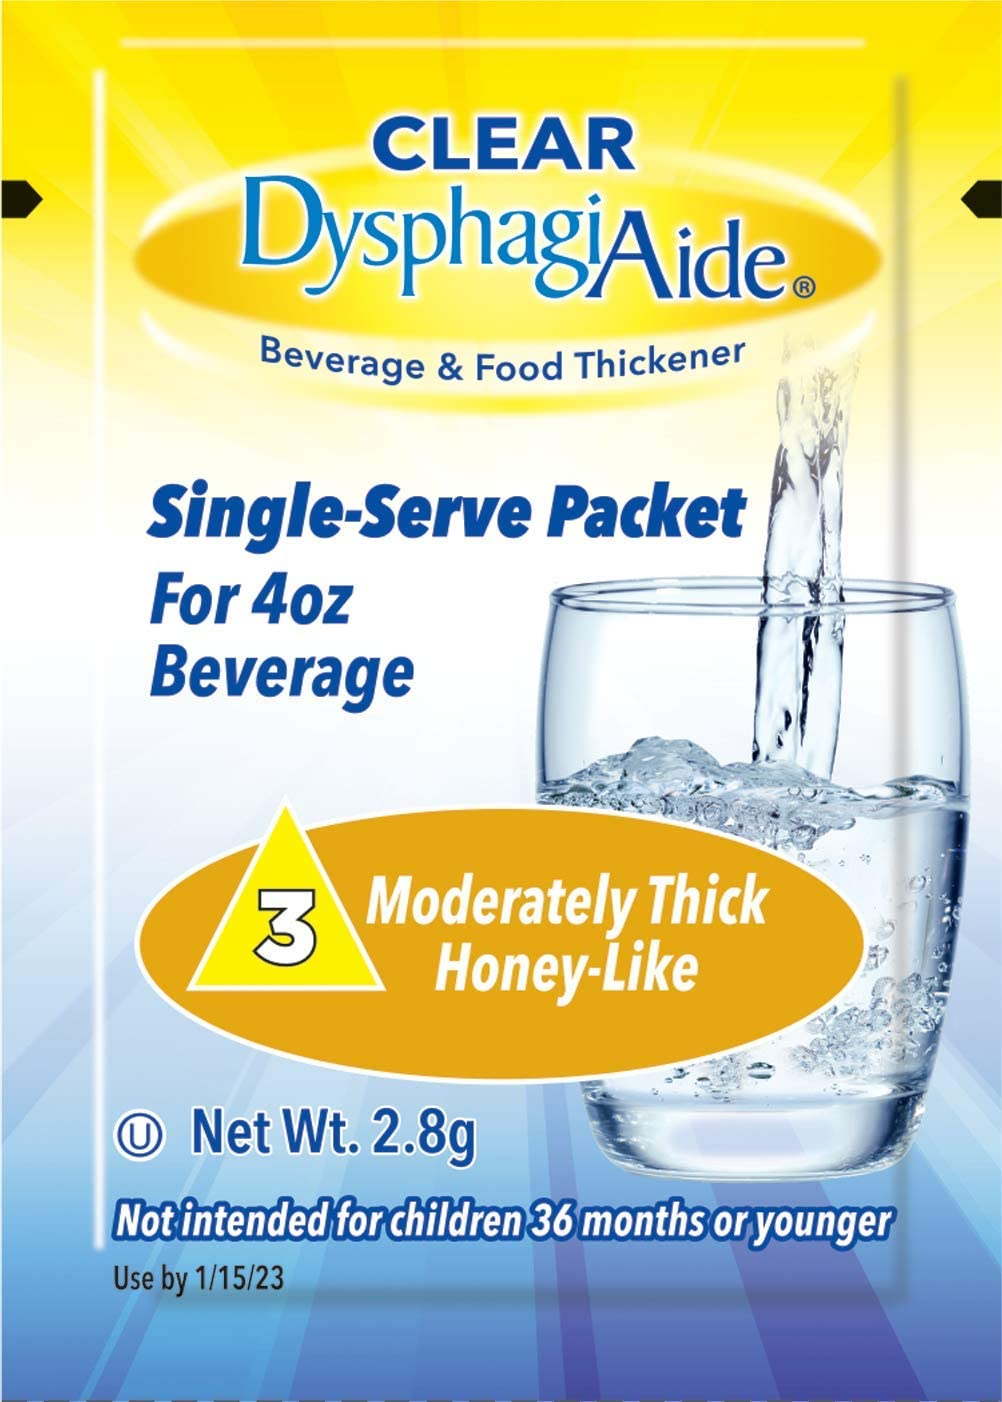 Clear DysphagiAide® Instant Beverage and Food Thickener, Box of 20 Single Serve Packets Level 3- Moderately Thick (Honey-Like Thickness)